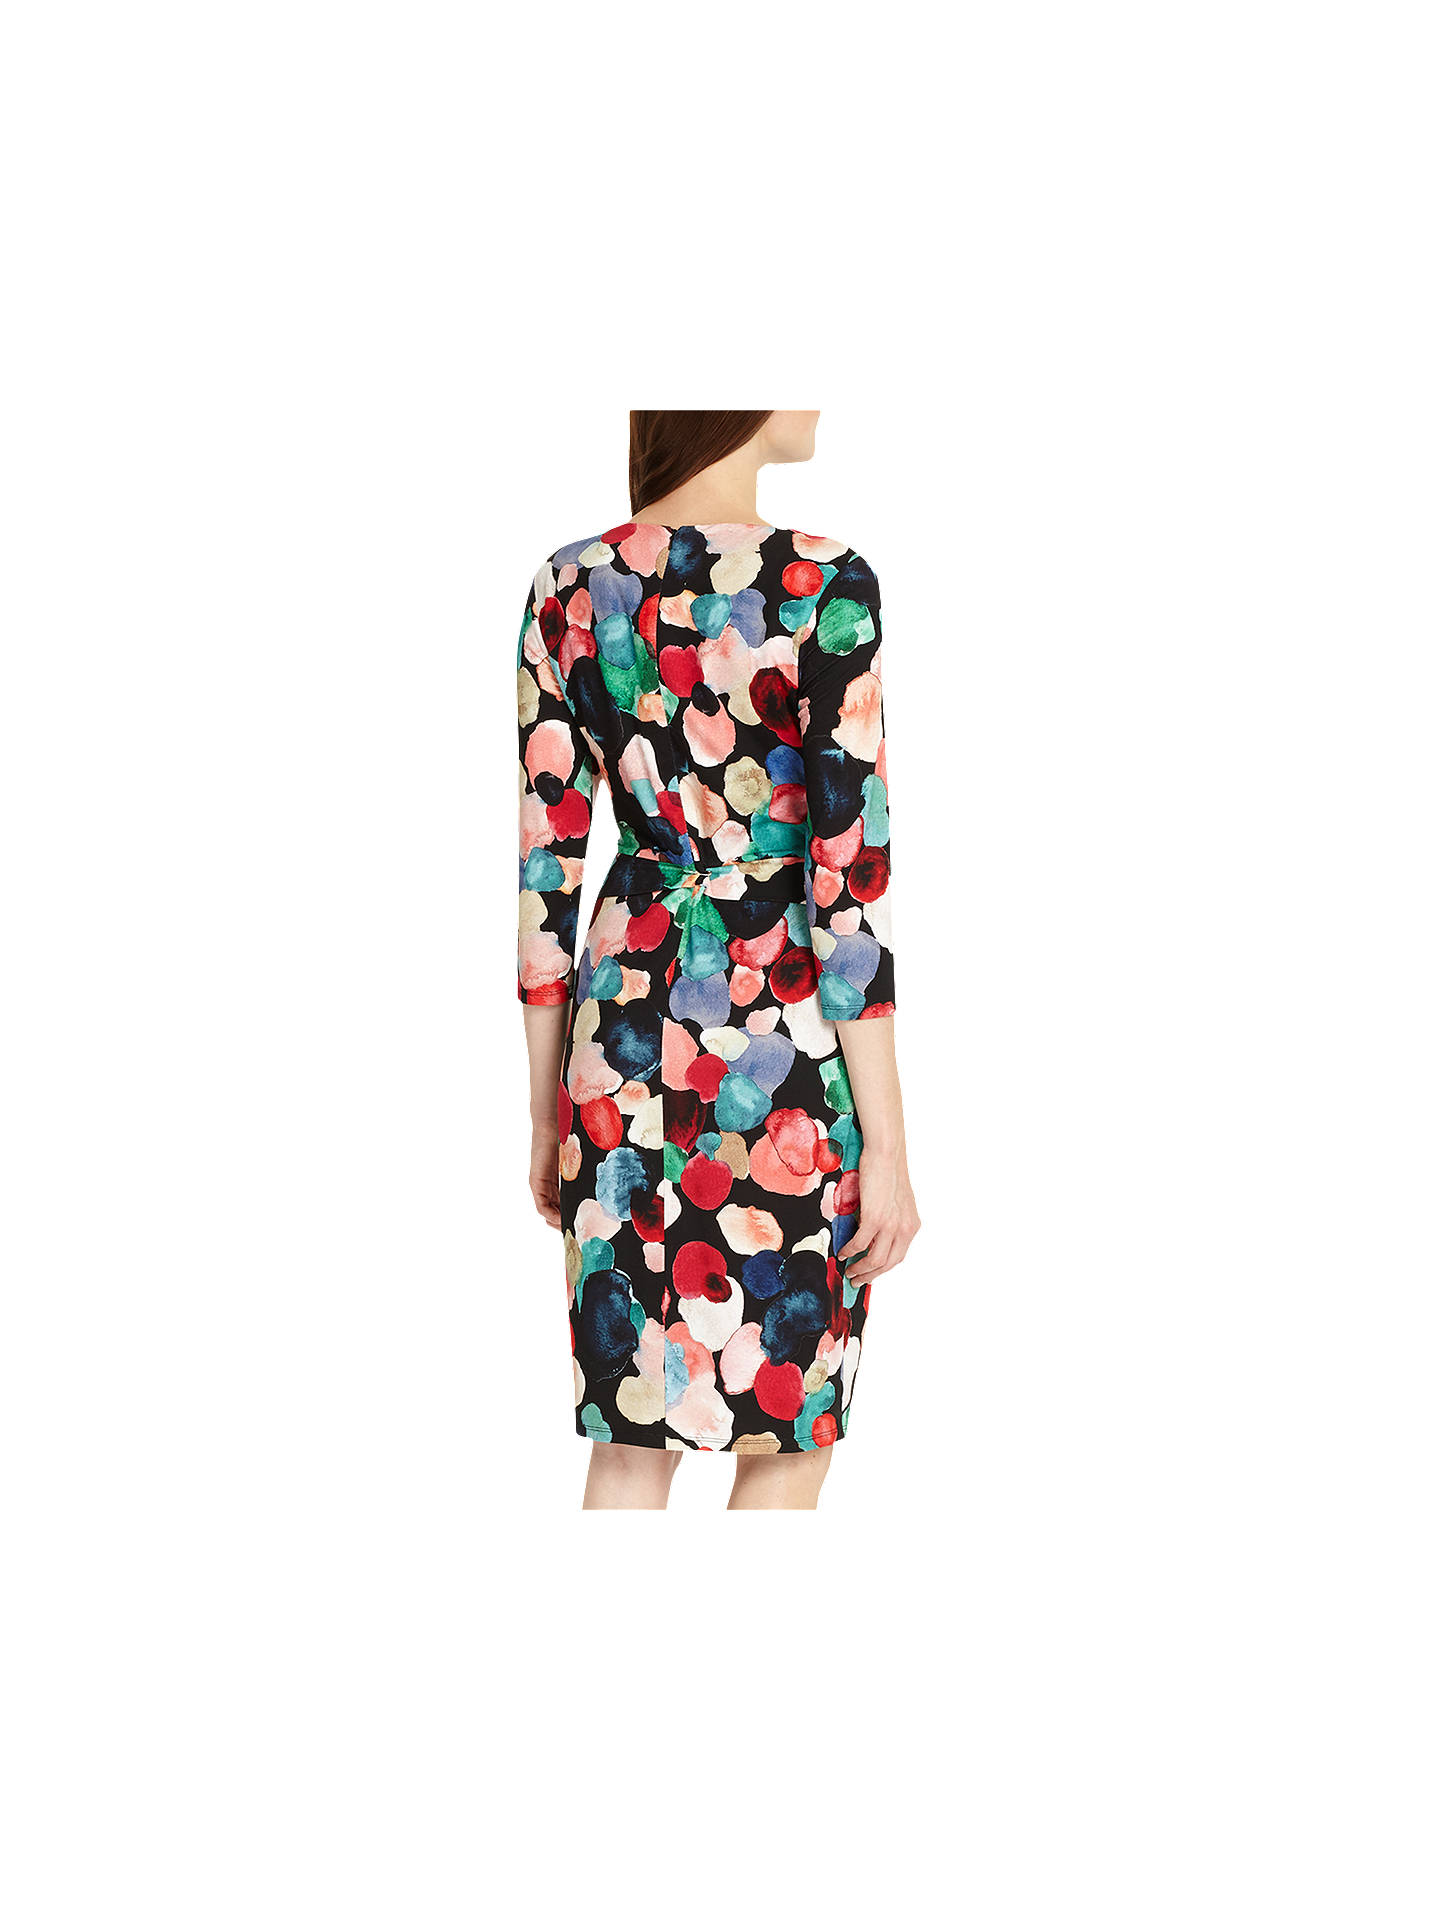 BuyPhase Eight Artist Palette Dress, Multi, 8 Online at johnlewis.com